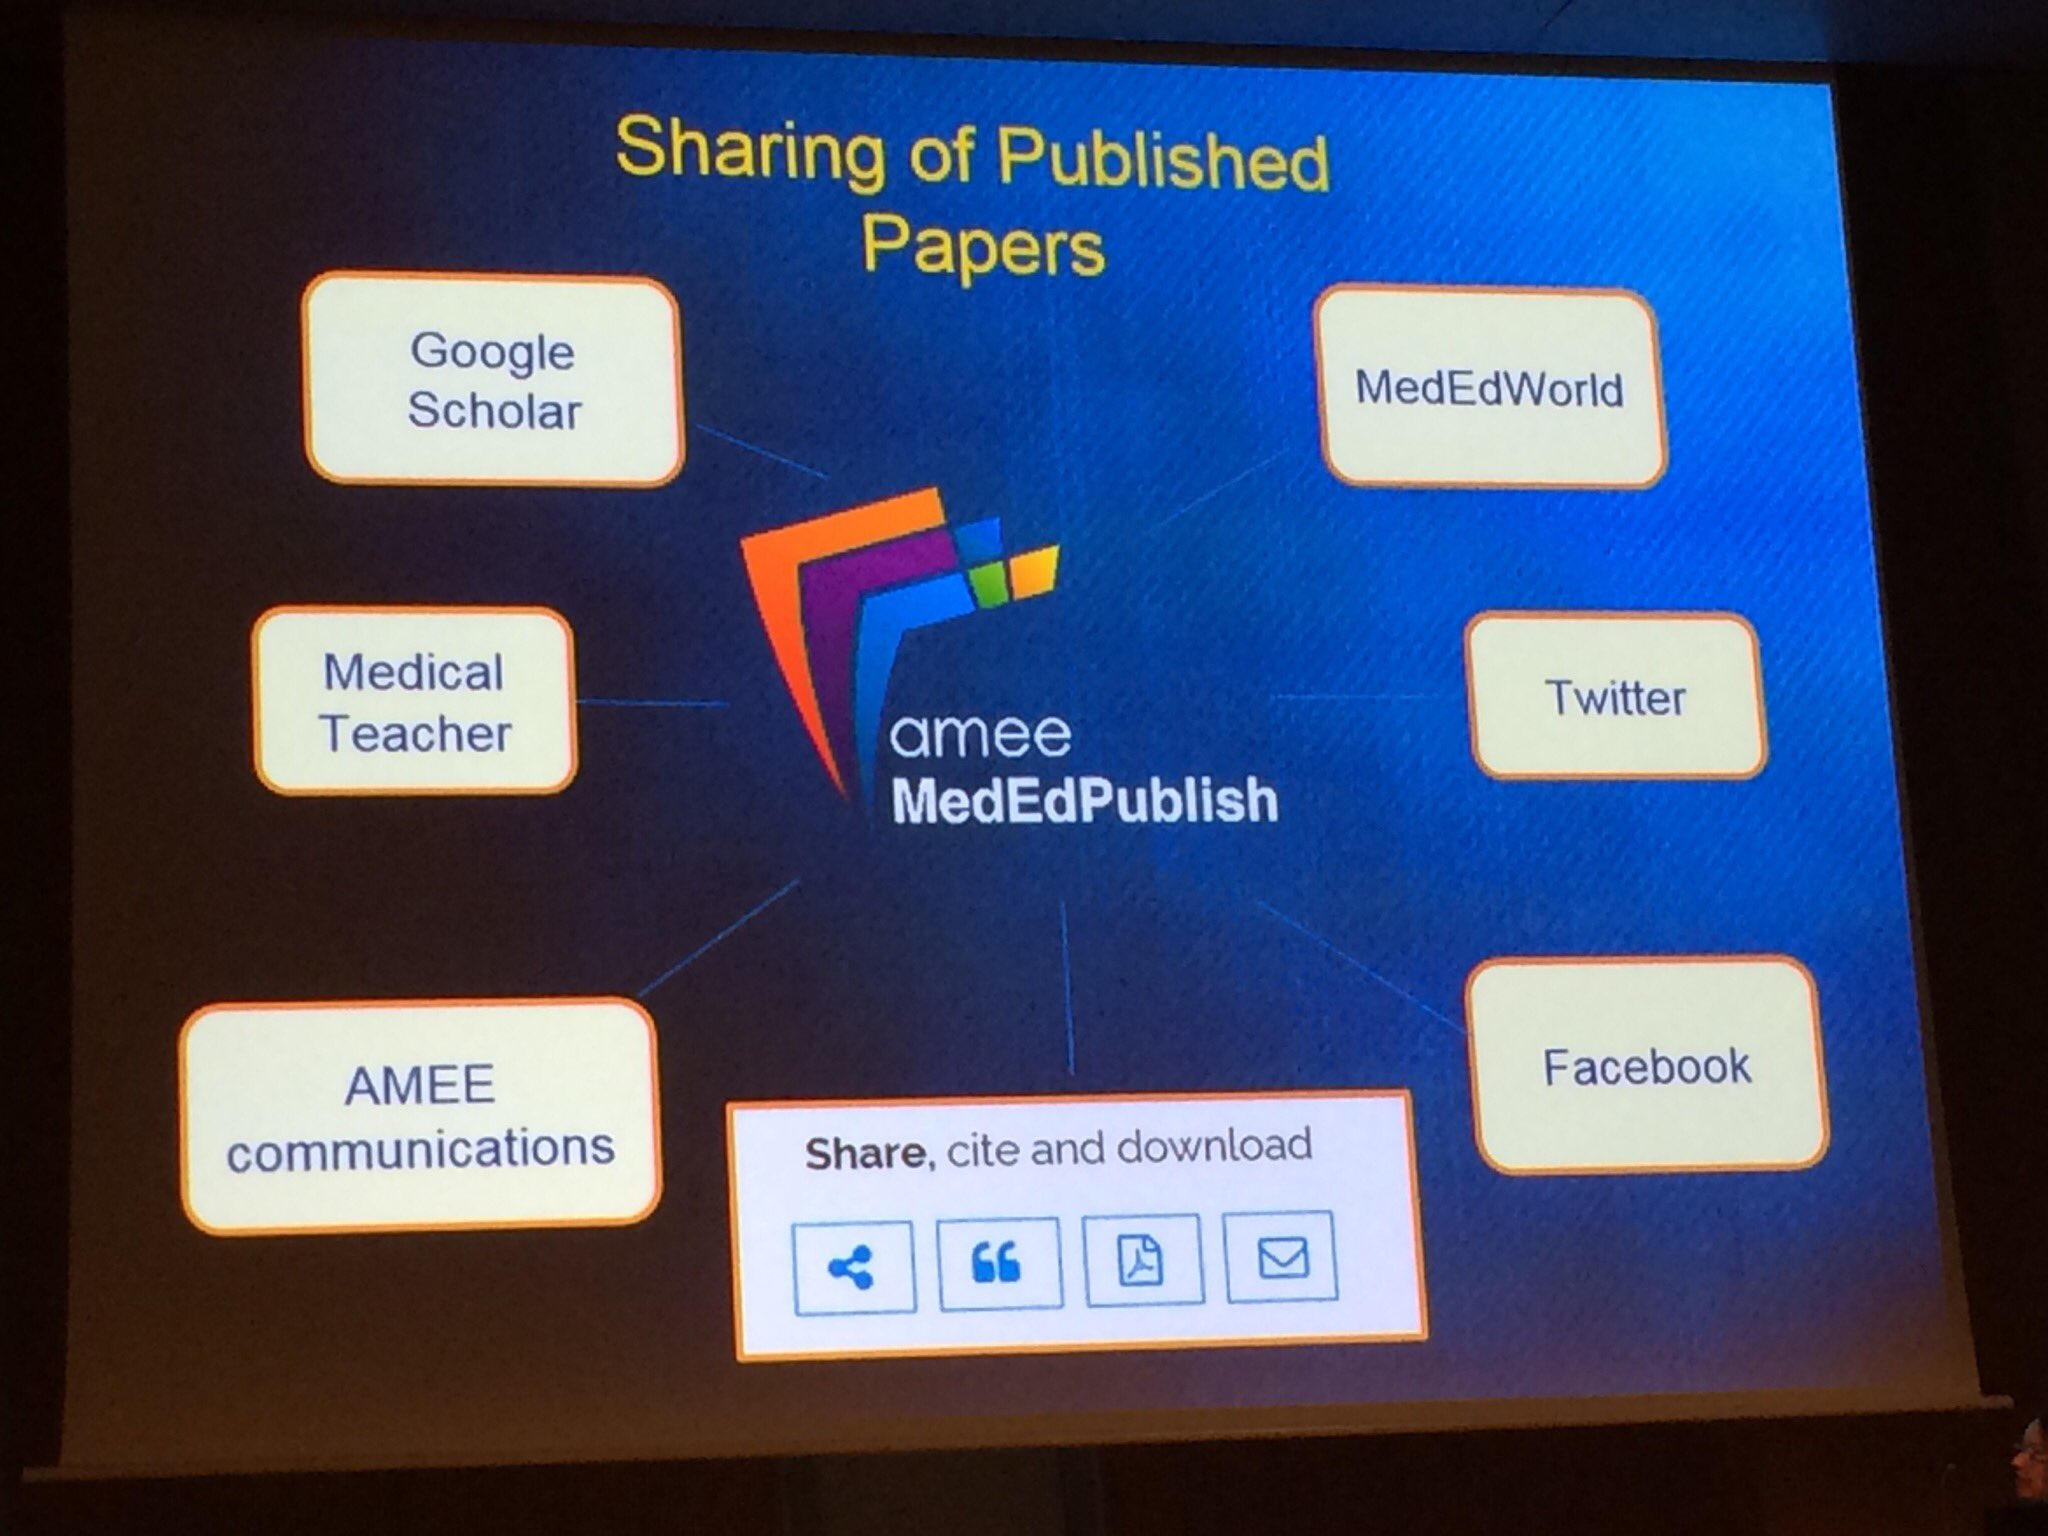 Leading the way with Social Media: tweeted, Google scholar, Facebook, top papers highlighted @MedEdPublish #AMEE2016 https://t.co/xFtJvM8KWh